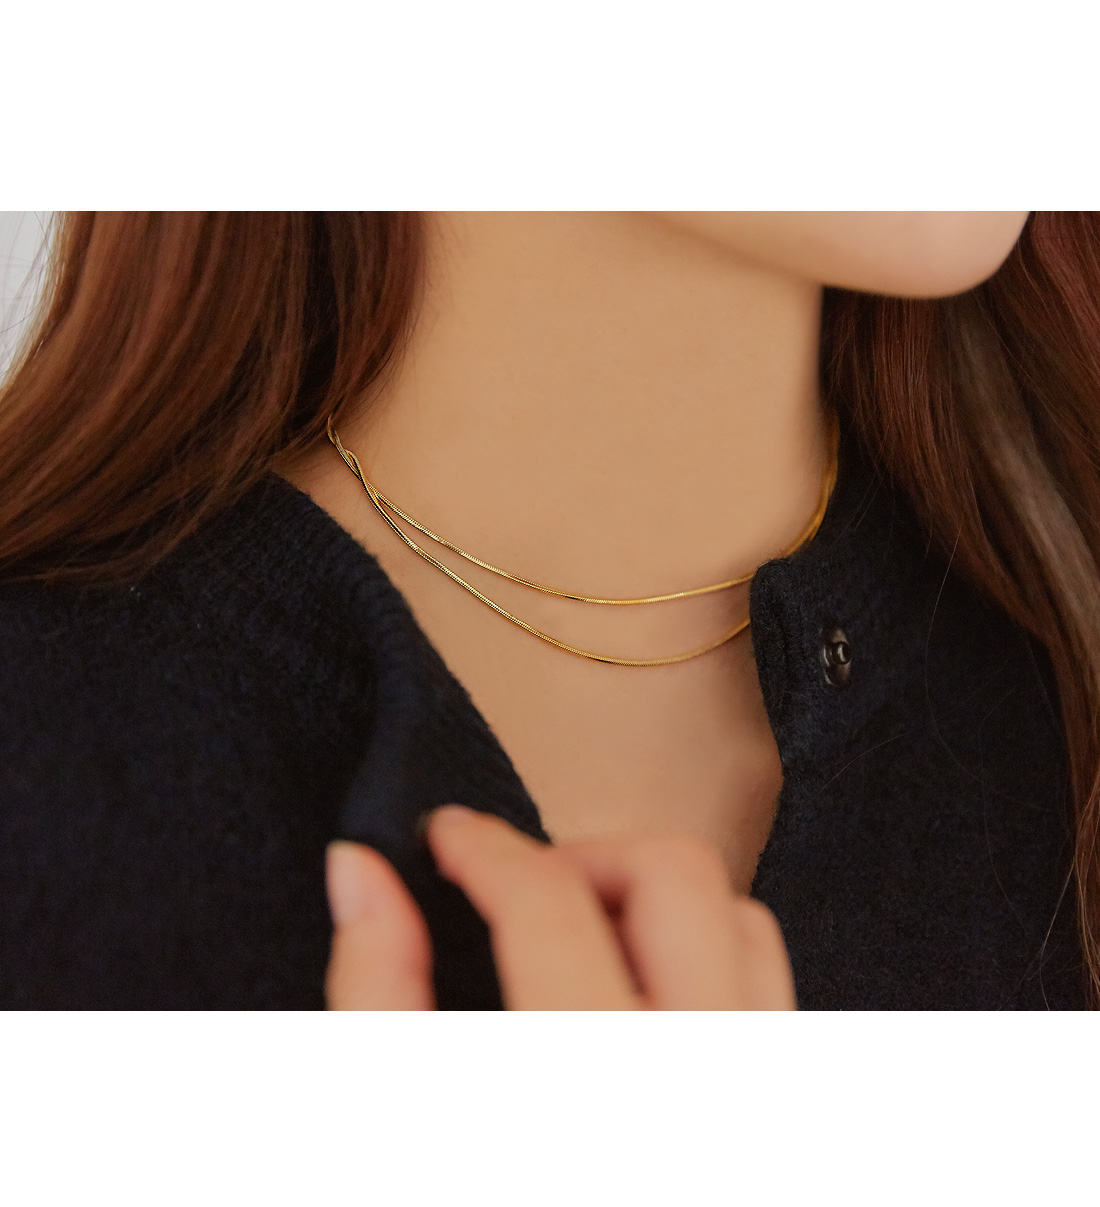 ELATE LAYERED NECKLACE